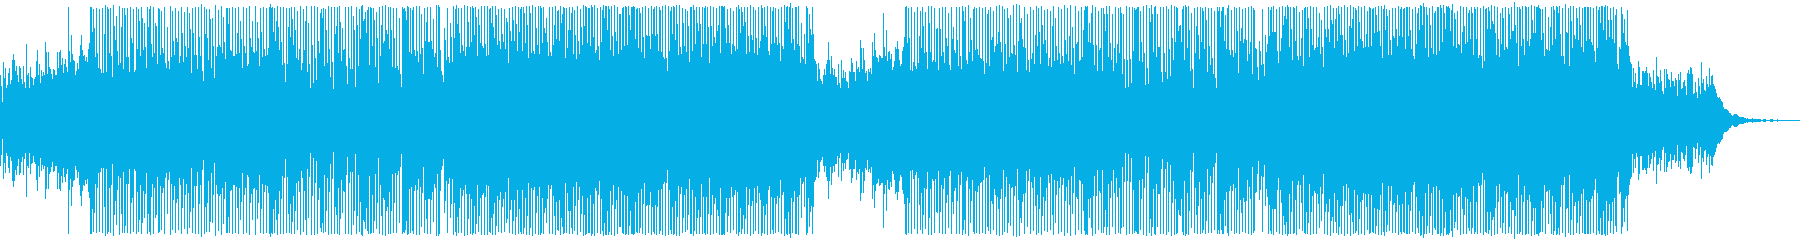 Awkward acoustic with transparency's reproduced waveform